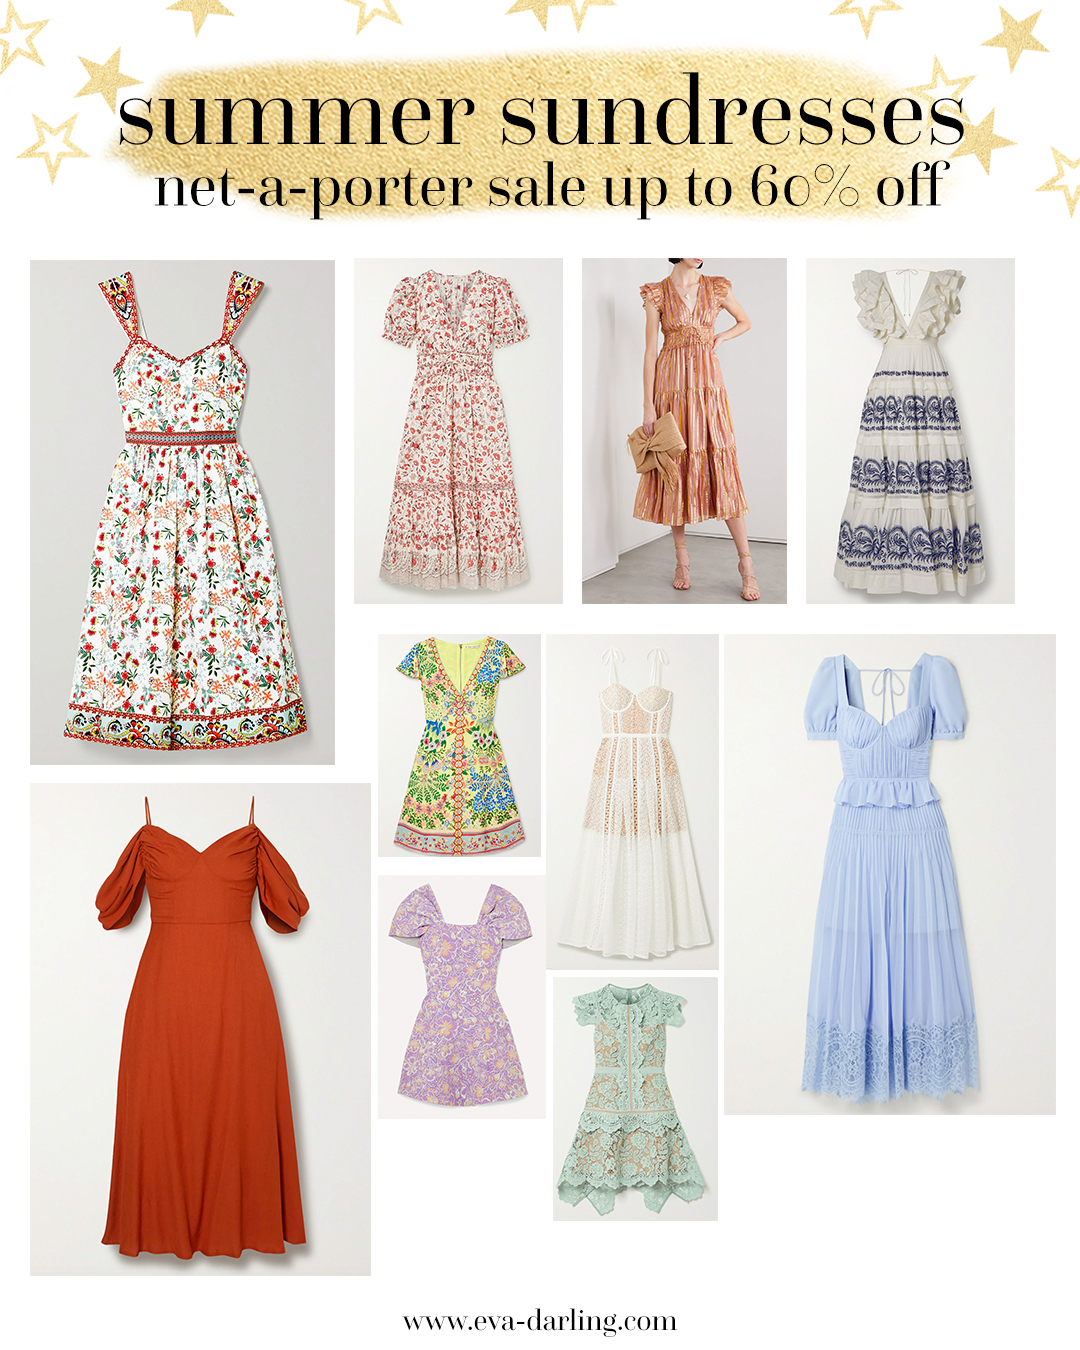 summer sundress, designer dress sale at net-a-porter, cult gaia, ulia johnson, self portrait, alice and olivia, rotate birger christensen